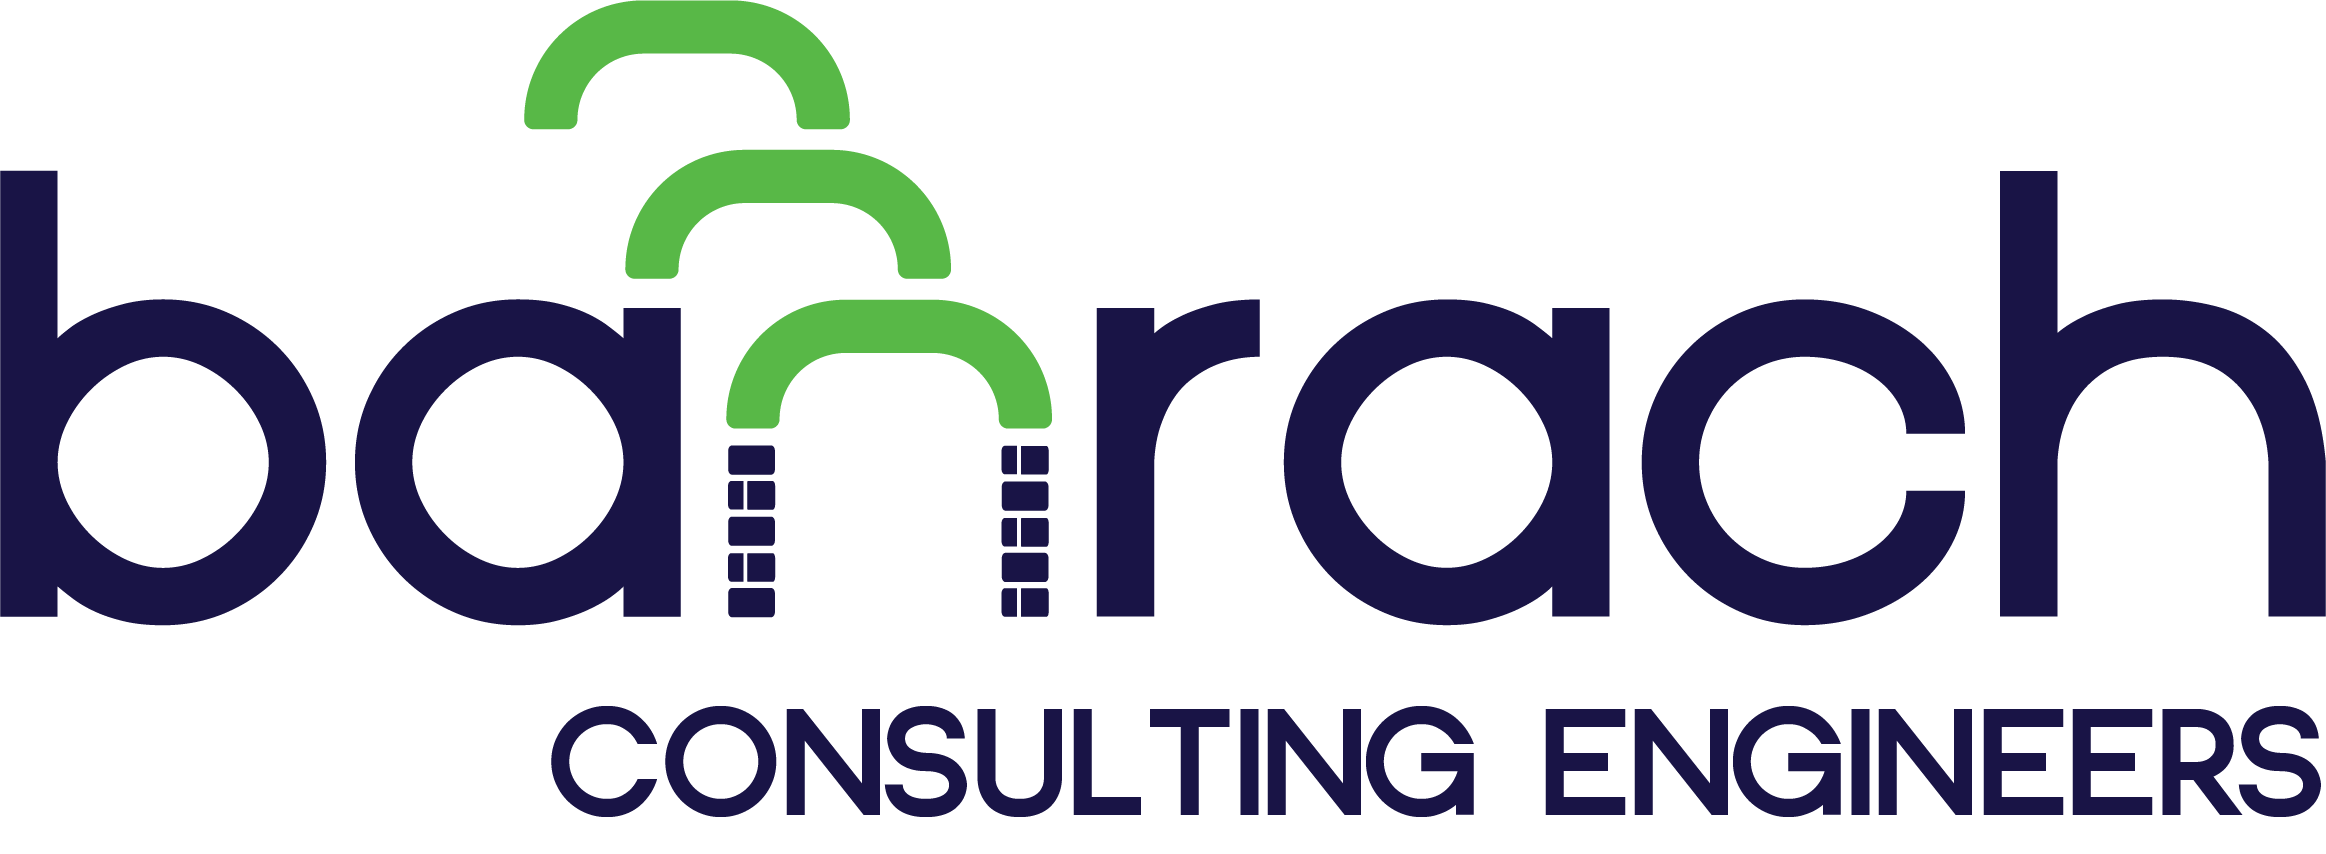 Banrach Consulting Engineers Logo